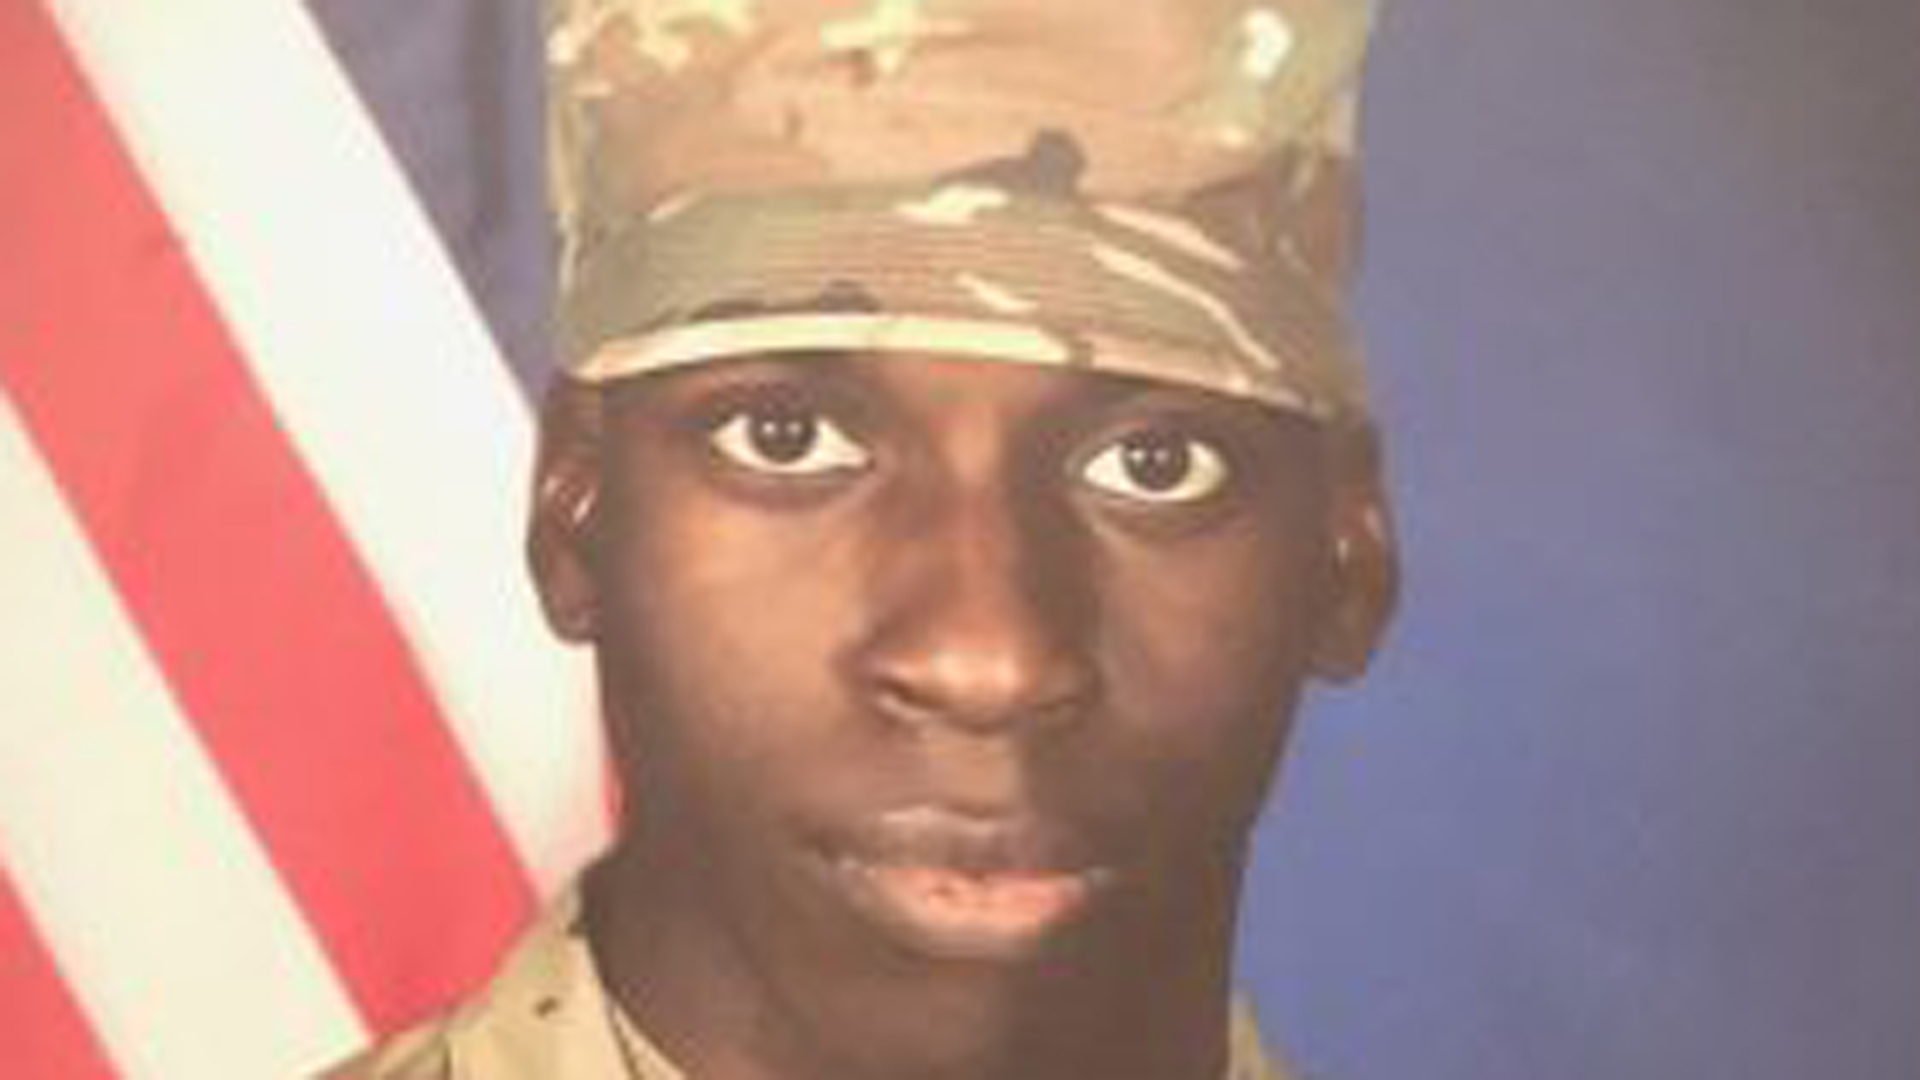 File photo of Emantic Fitzgerald Bradford Jr., known as E.J., dressed in basic training Army fatigues. The photo was released by the family attorney, Benjamin L. Crump. Bradford Jr. said on his Facebook page he was a US Army combat engineer. An Army spokesman told CNN he never completed advanced individual training and did not officially serve in the Army. (Credit: CNN)